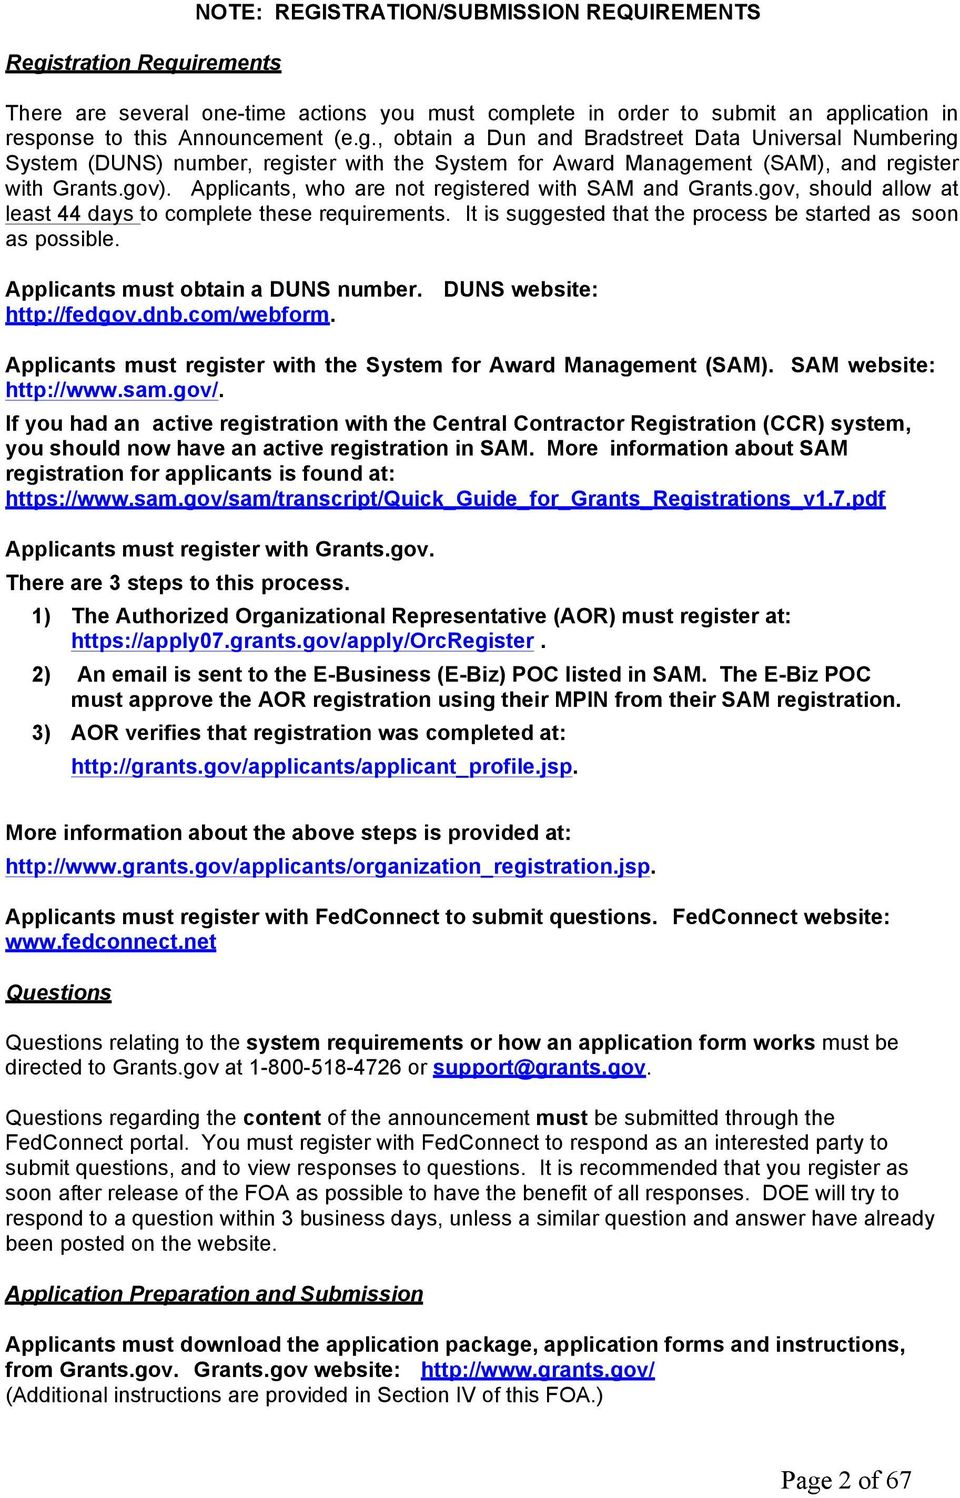 Applicants must obtain a DUNS number. DUNS website: http://fedgov.dnb.com/webform. Applicants must register with the System for Award Management (SAM). SAM website: http://www.sam.gov/.